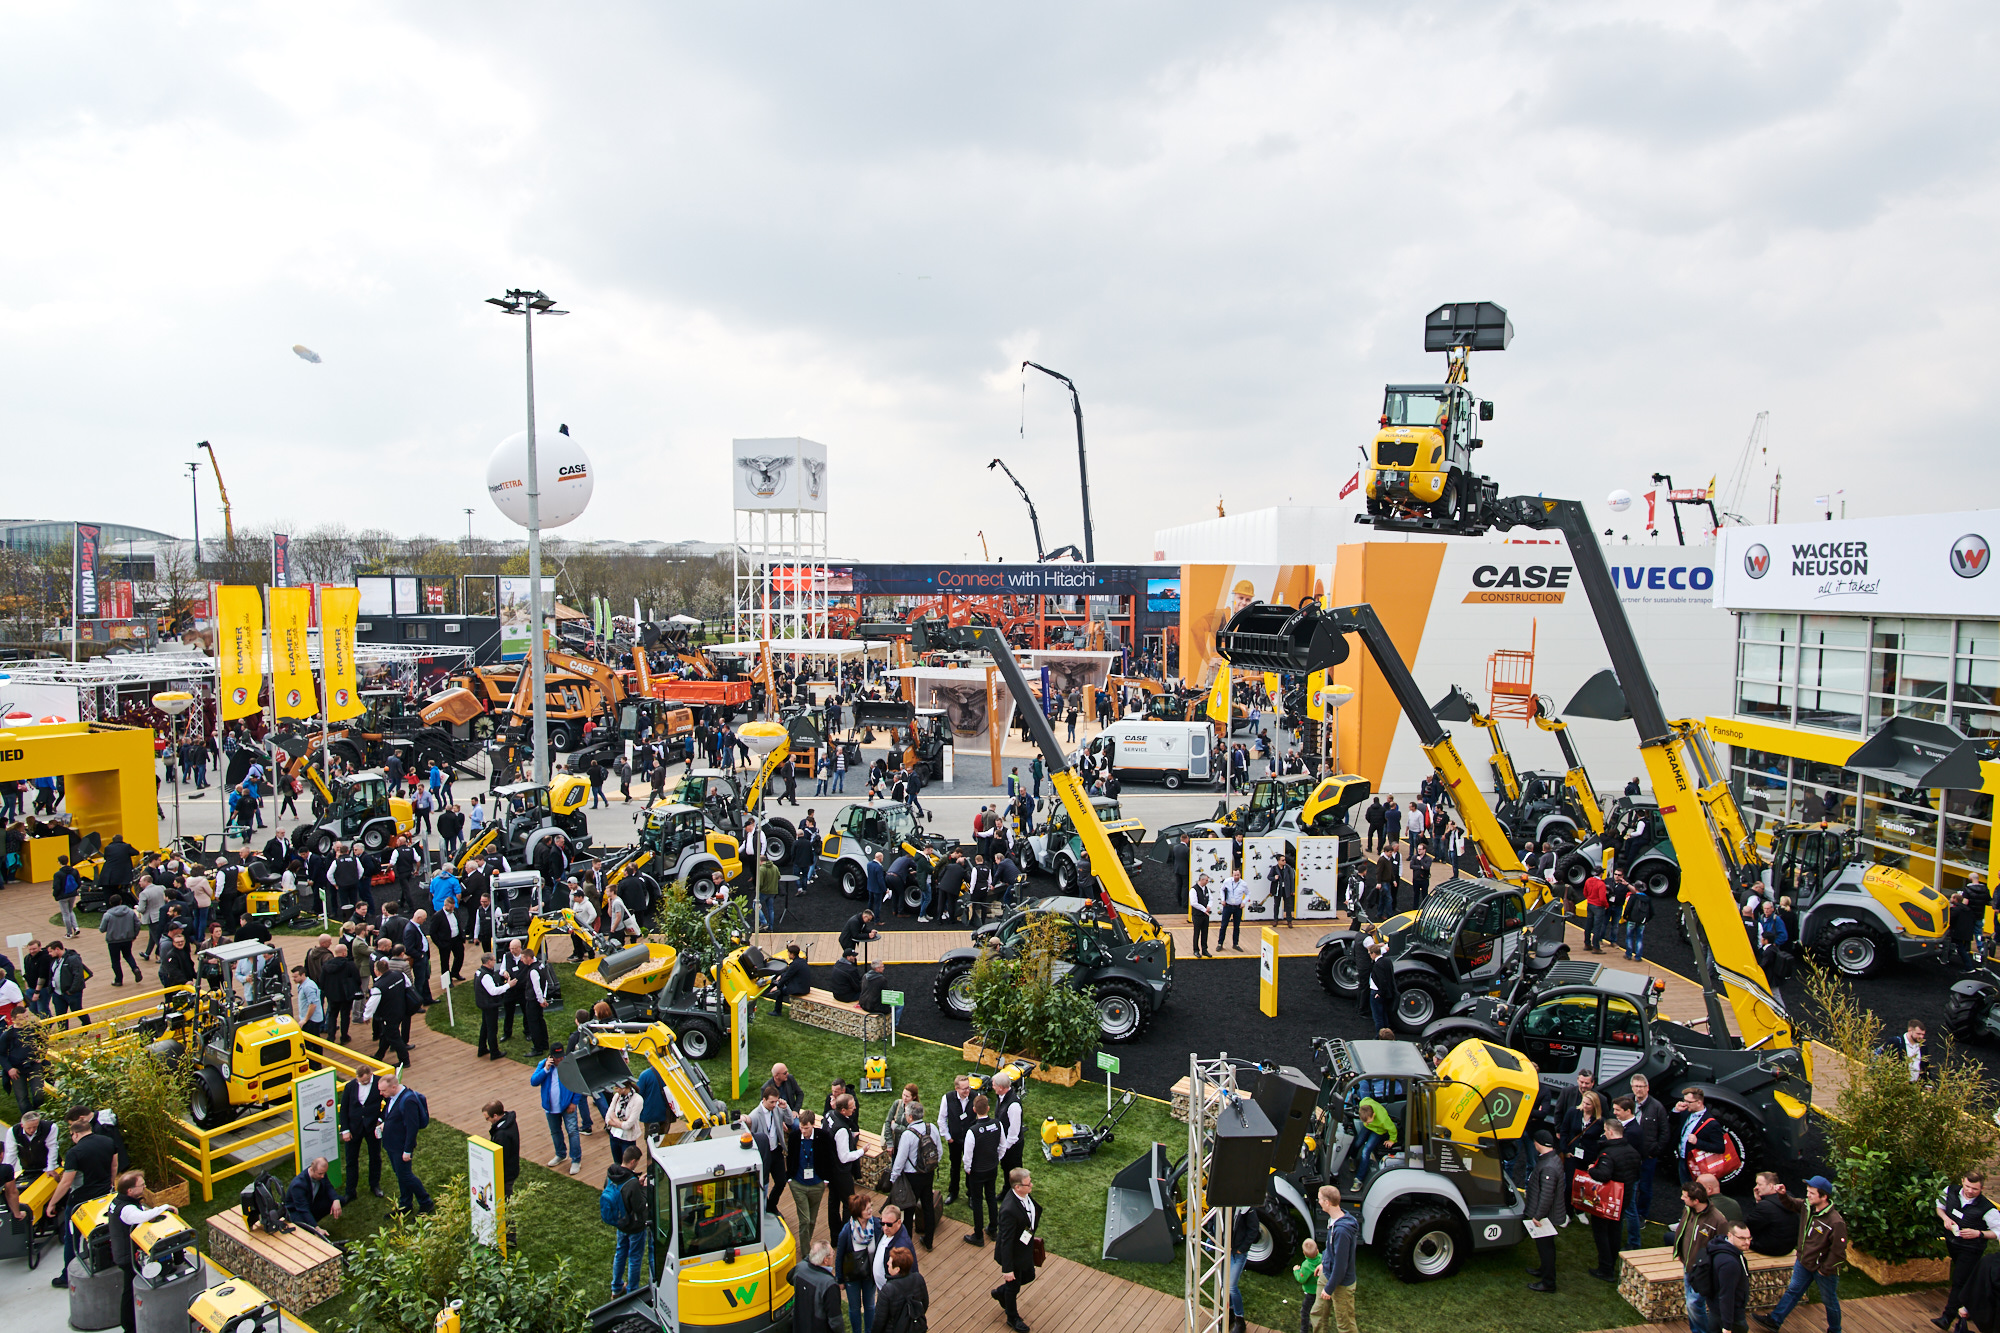 Bauma Munich External Area Crane Shot